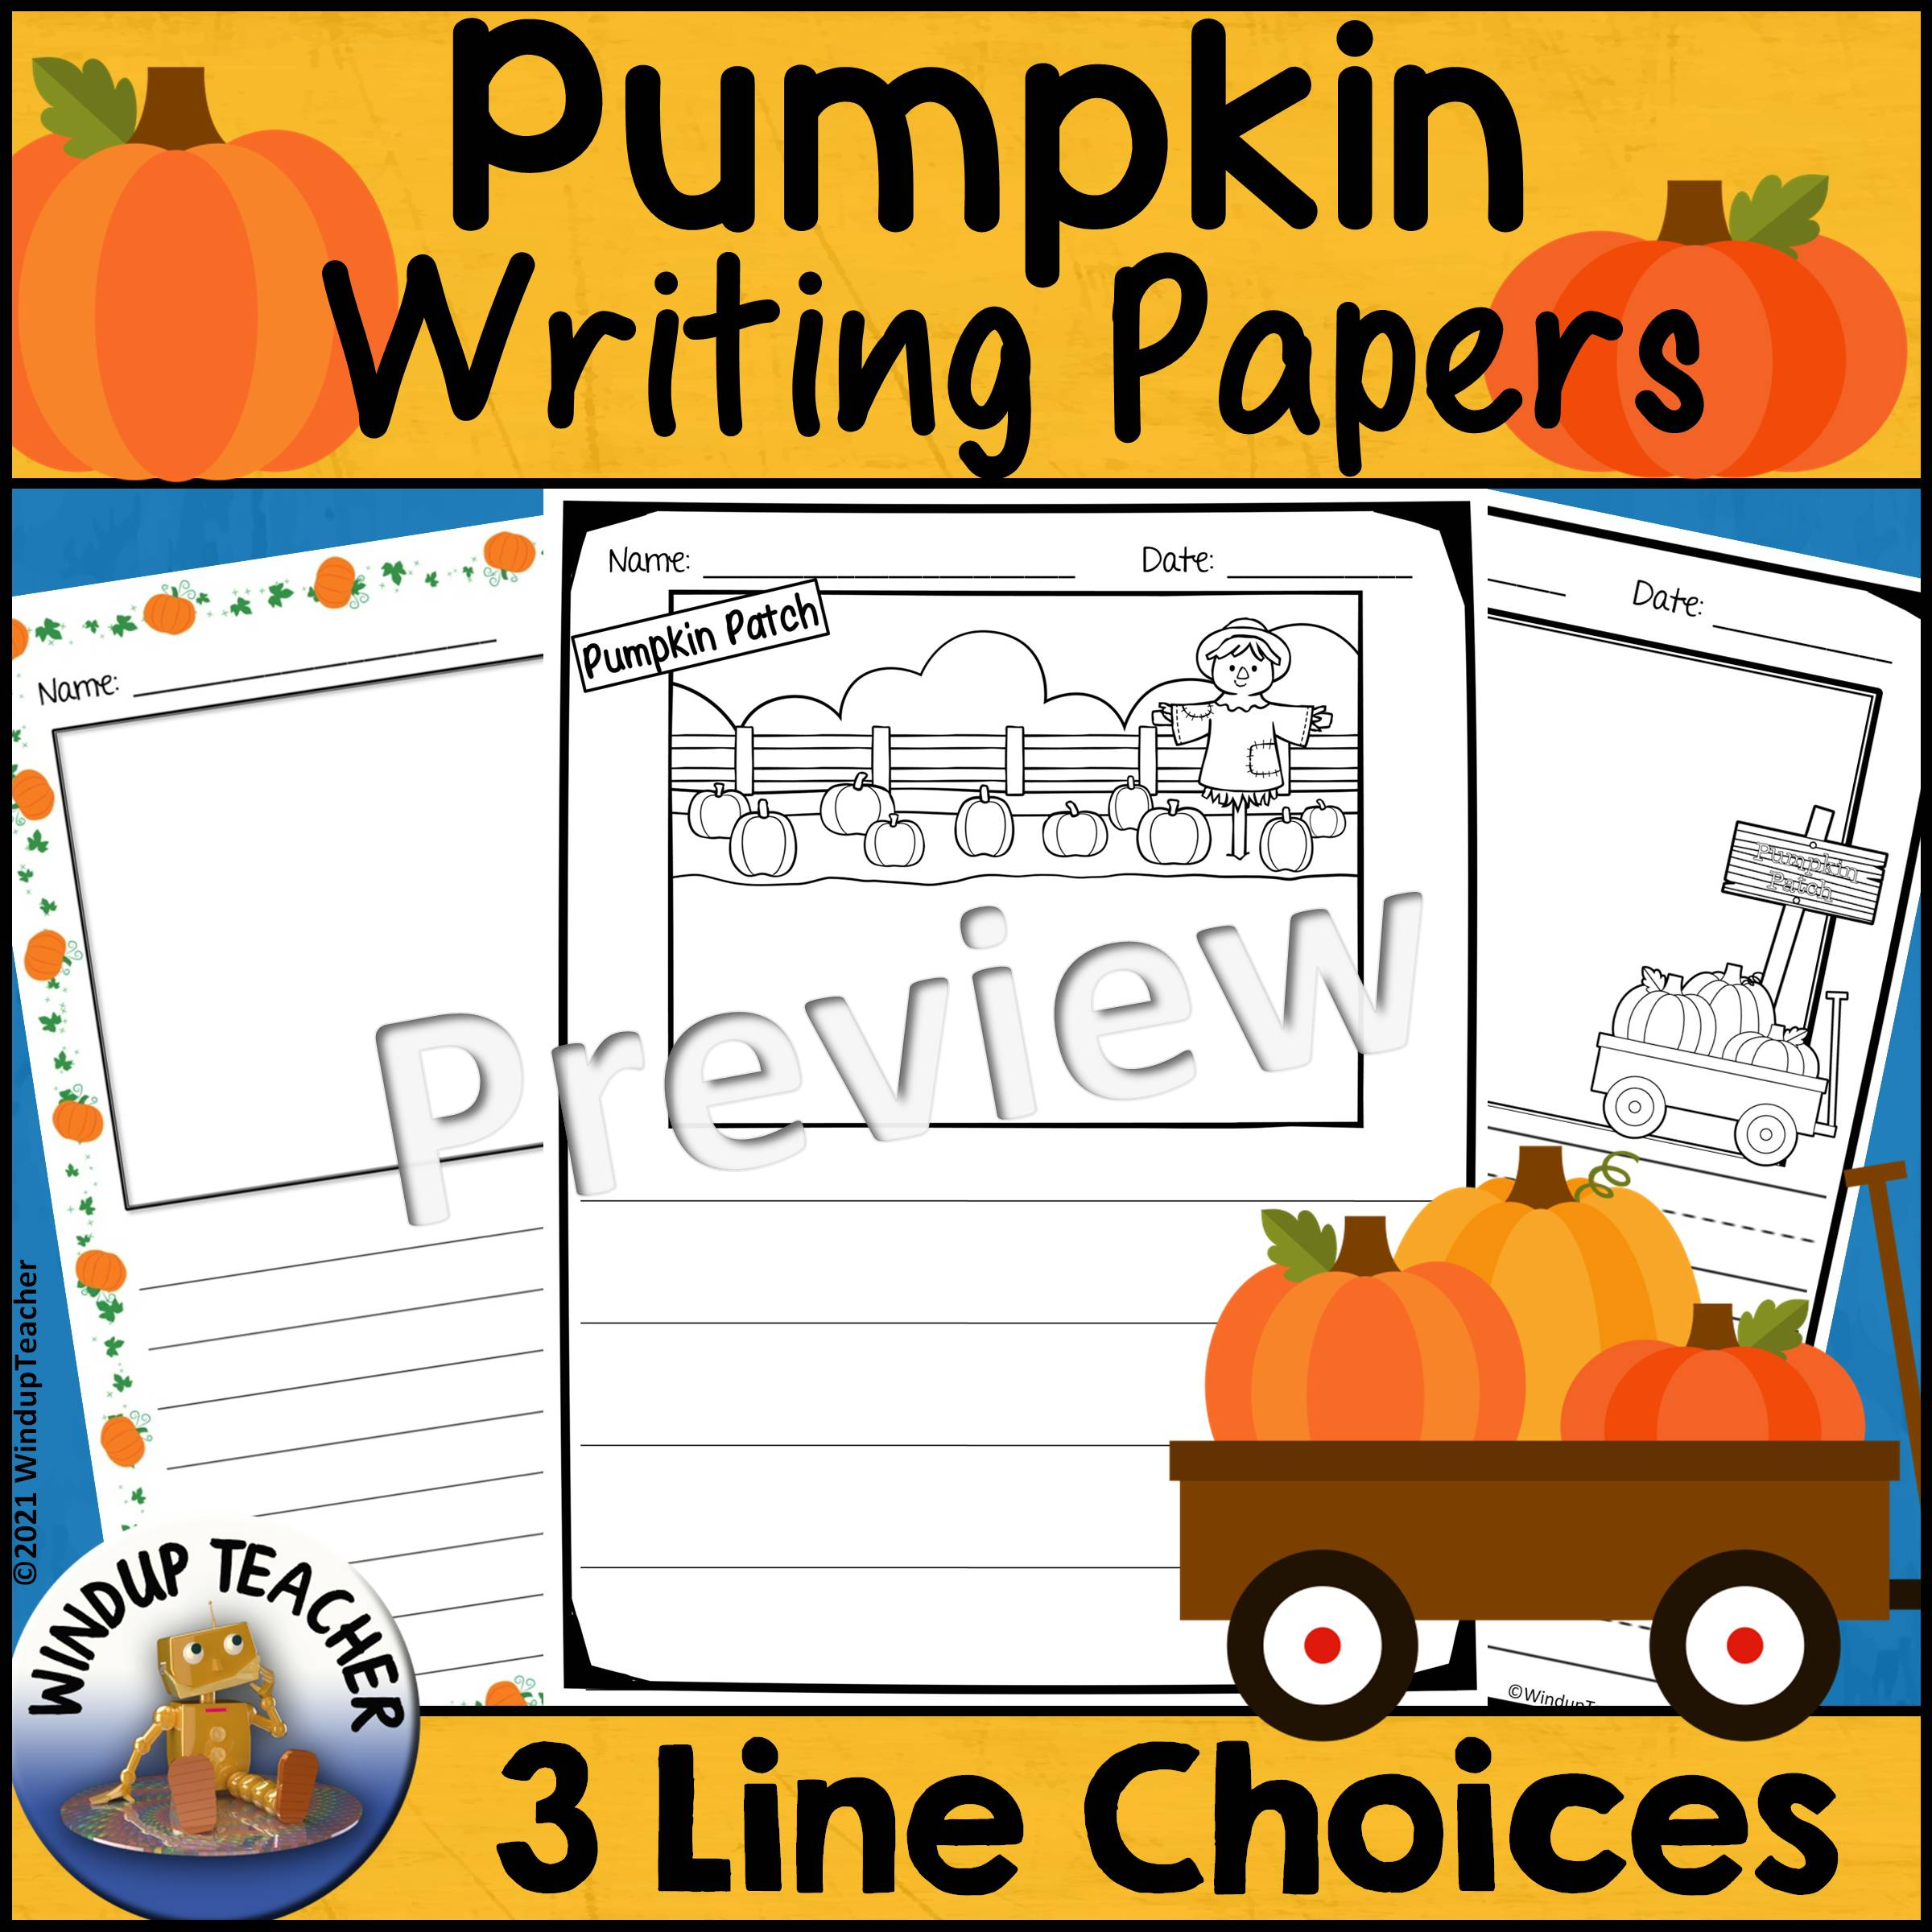 Pumpkin Writing Papers for Fall or Autumn